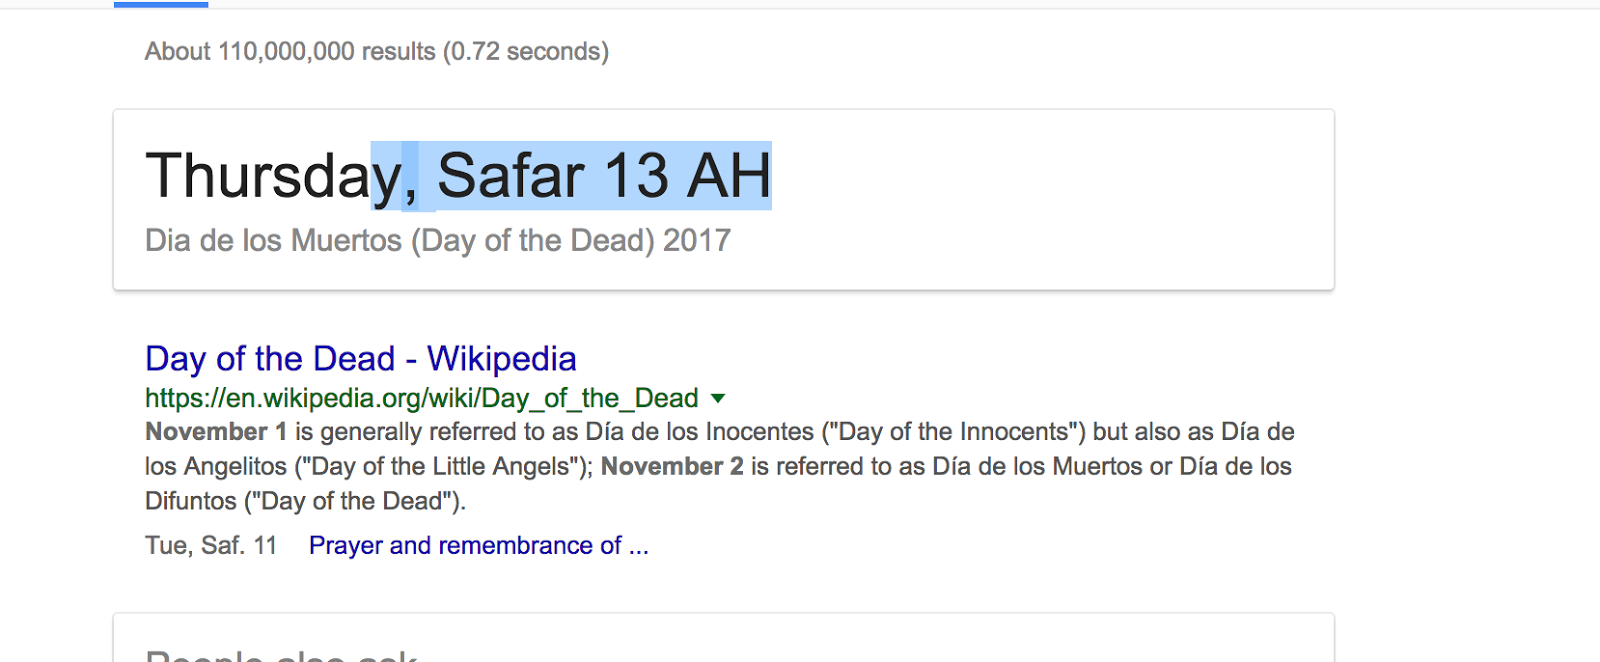 Google giving me wrong date - Google Search Help